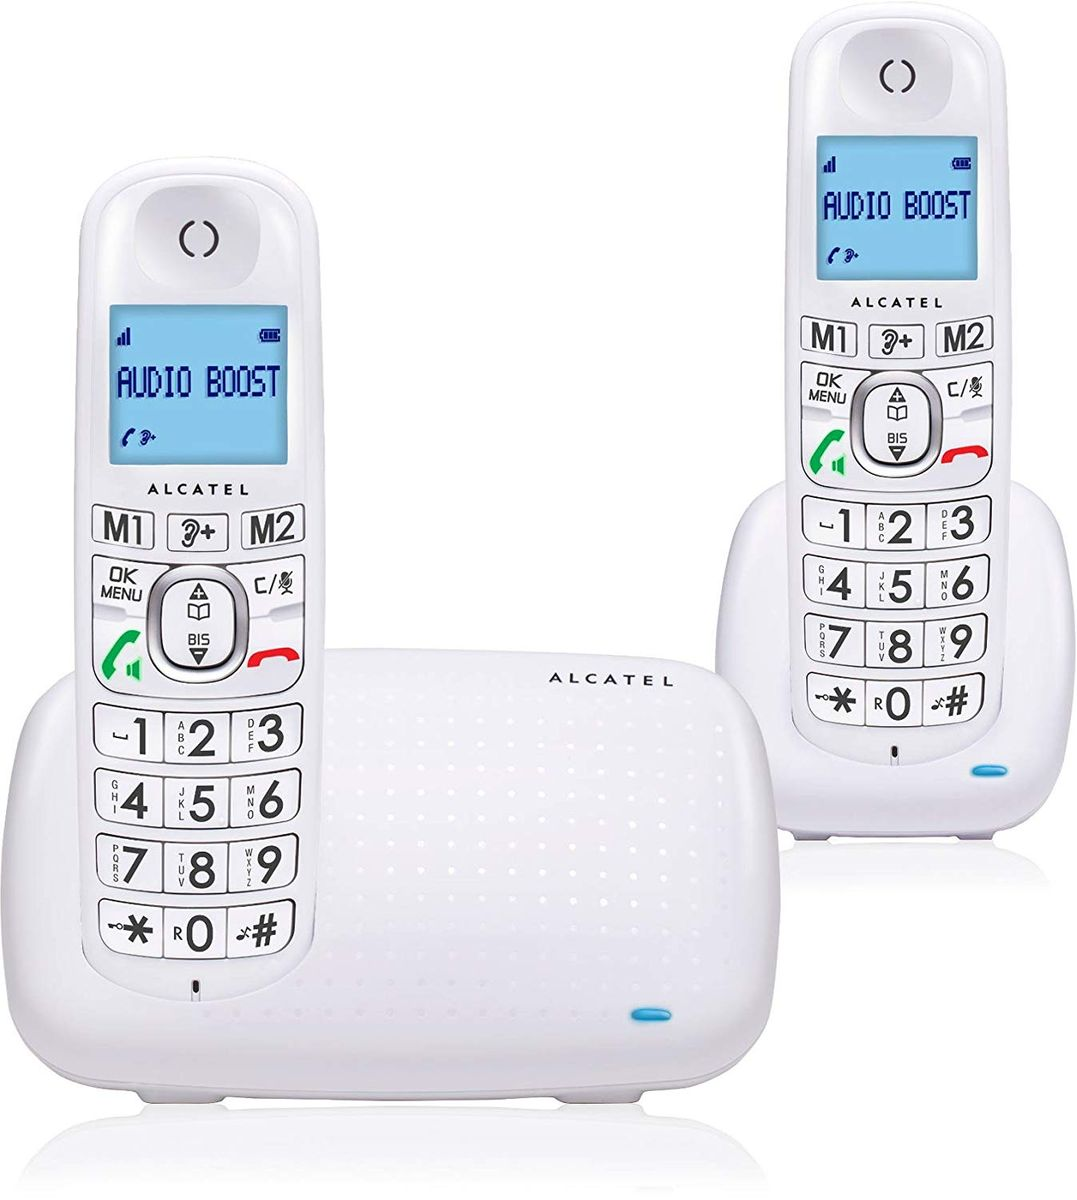 Alcatel XL385 Duo DECT-Telefon Weiß Anrufer-Identifikation